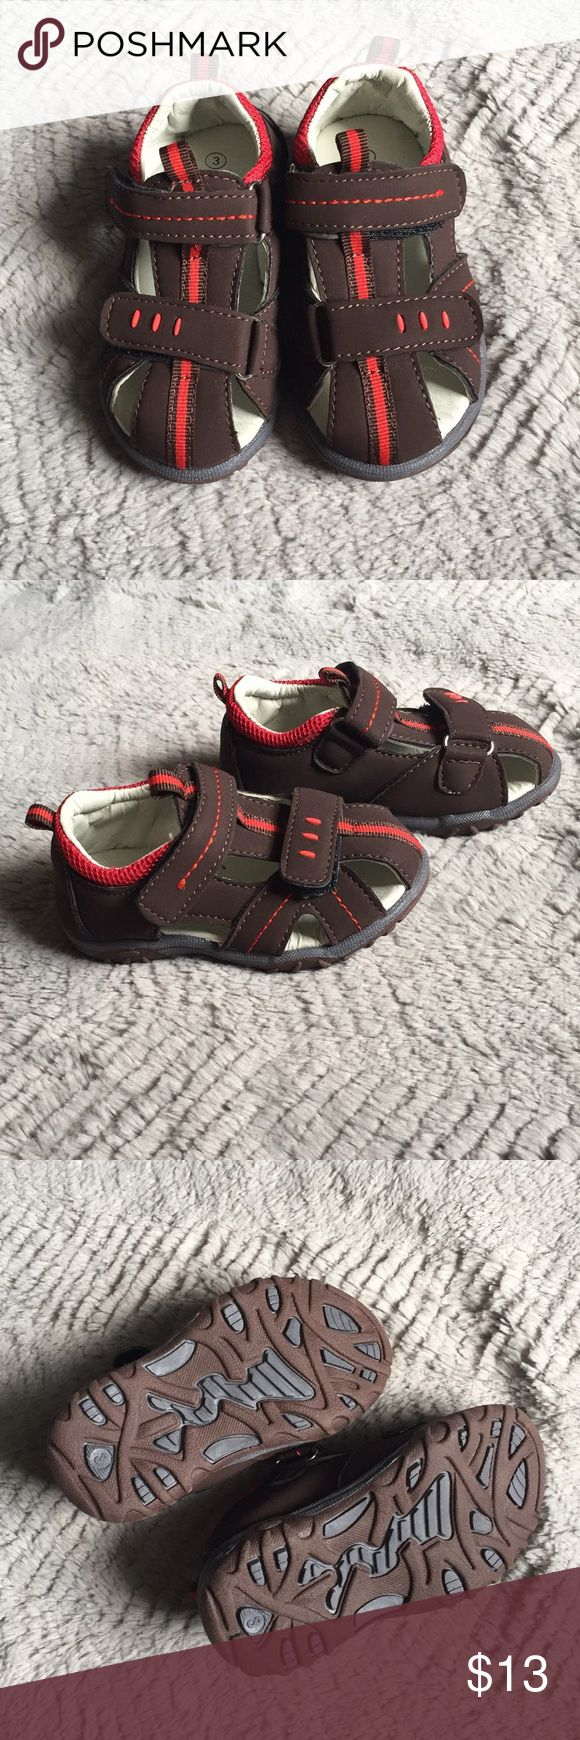 Brown Sandals Brand new boys sandals. Labeled 3 but fit like a 4. Never worn, were too big for my son when he wore a 3 then the summer ended so he never wore them. Luna Shoes Sandals & Flip Flops